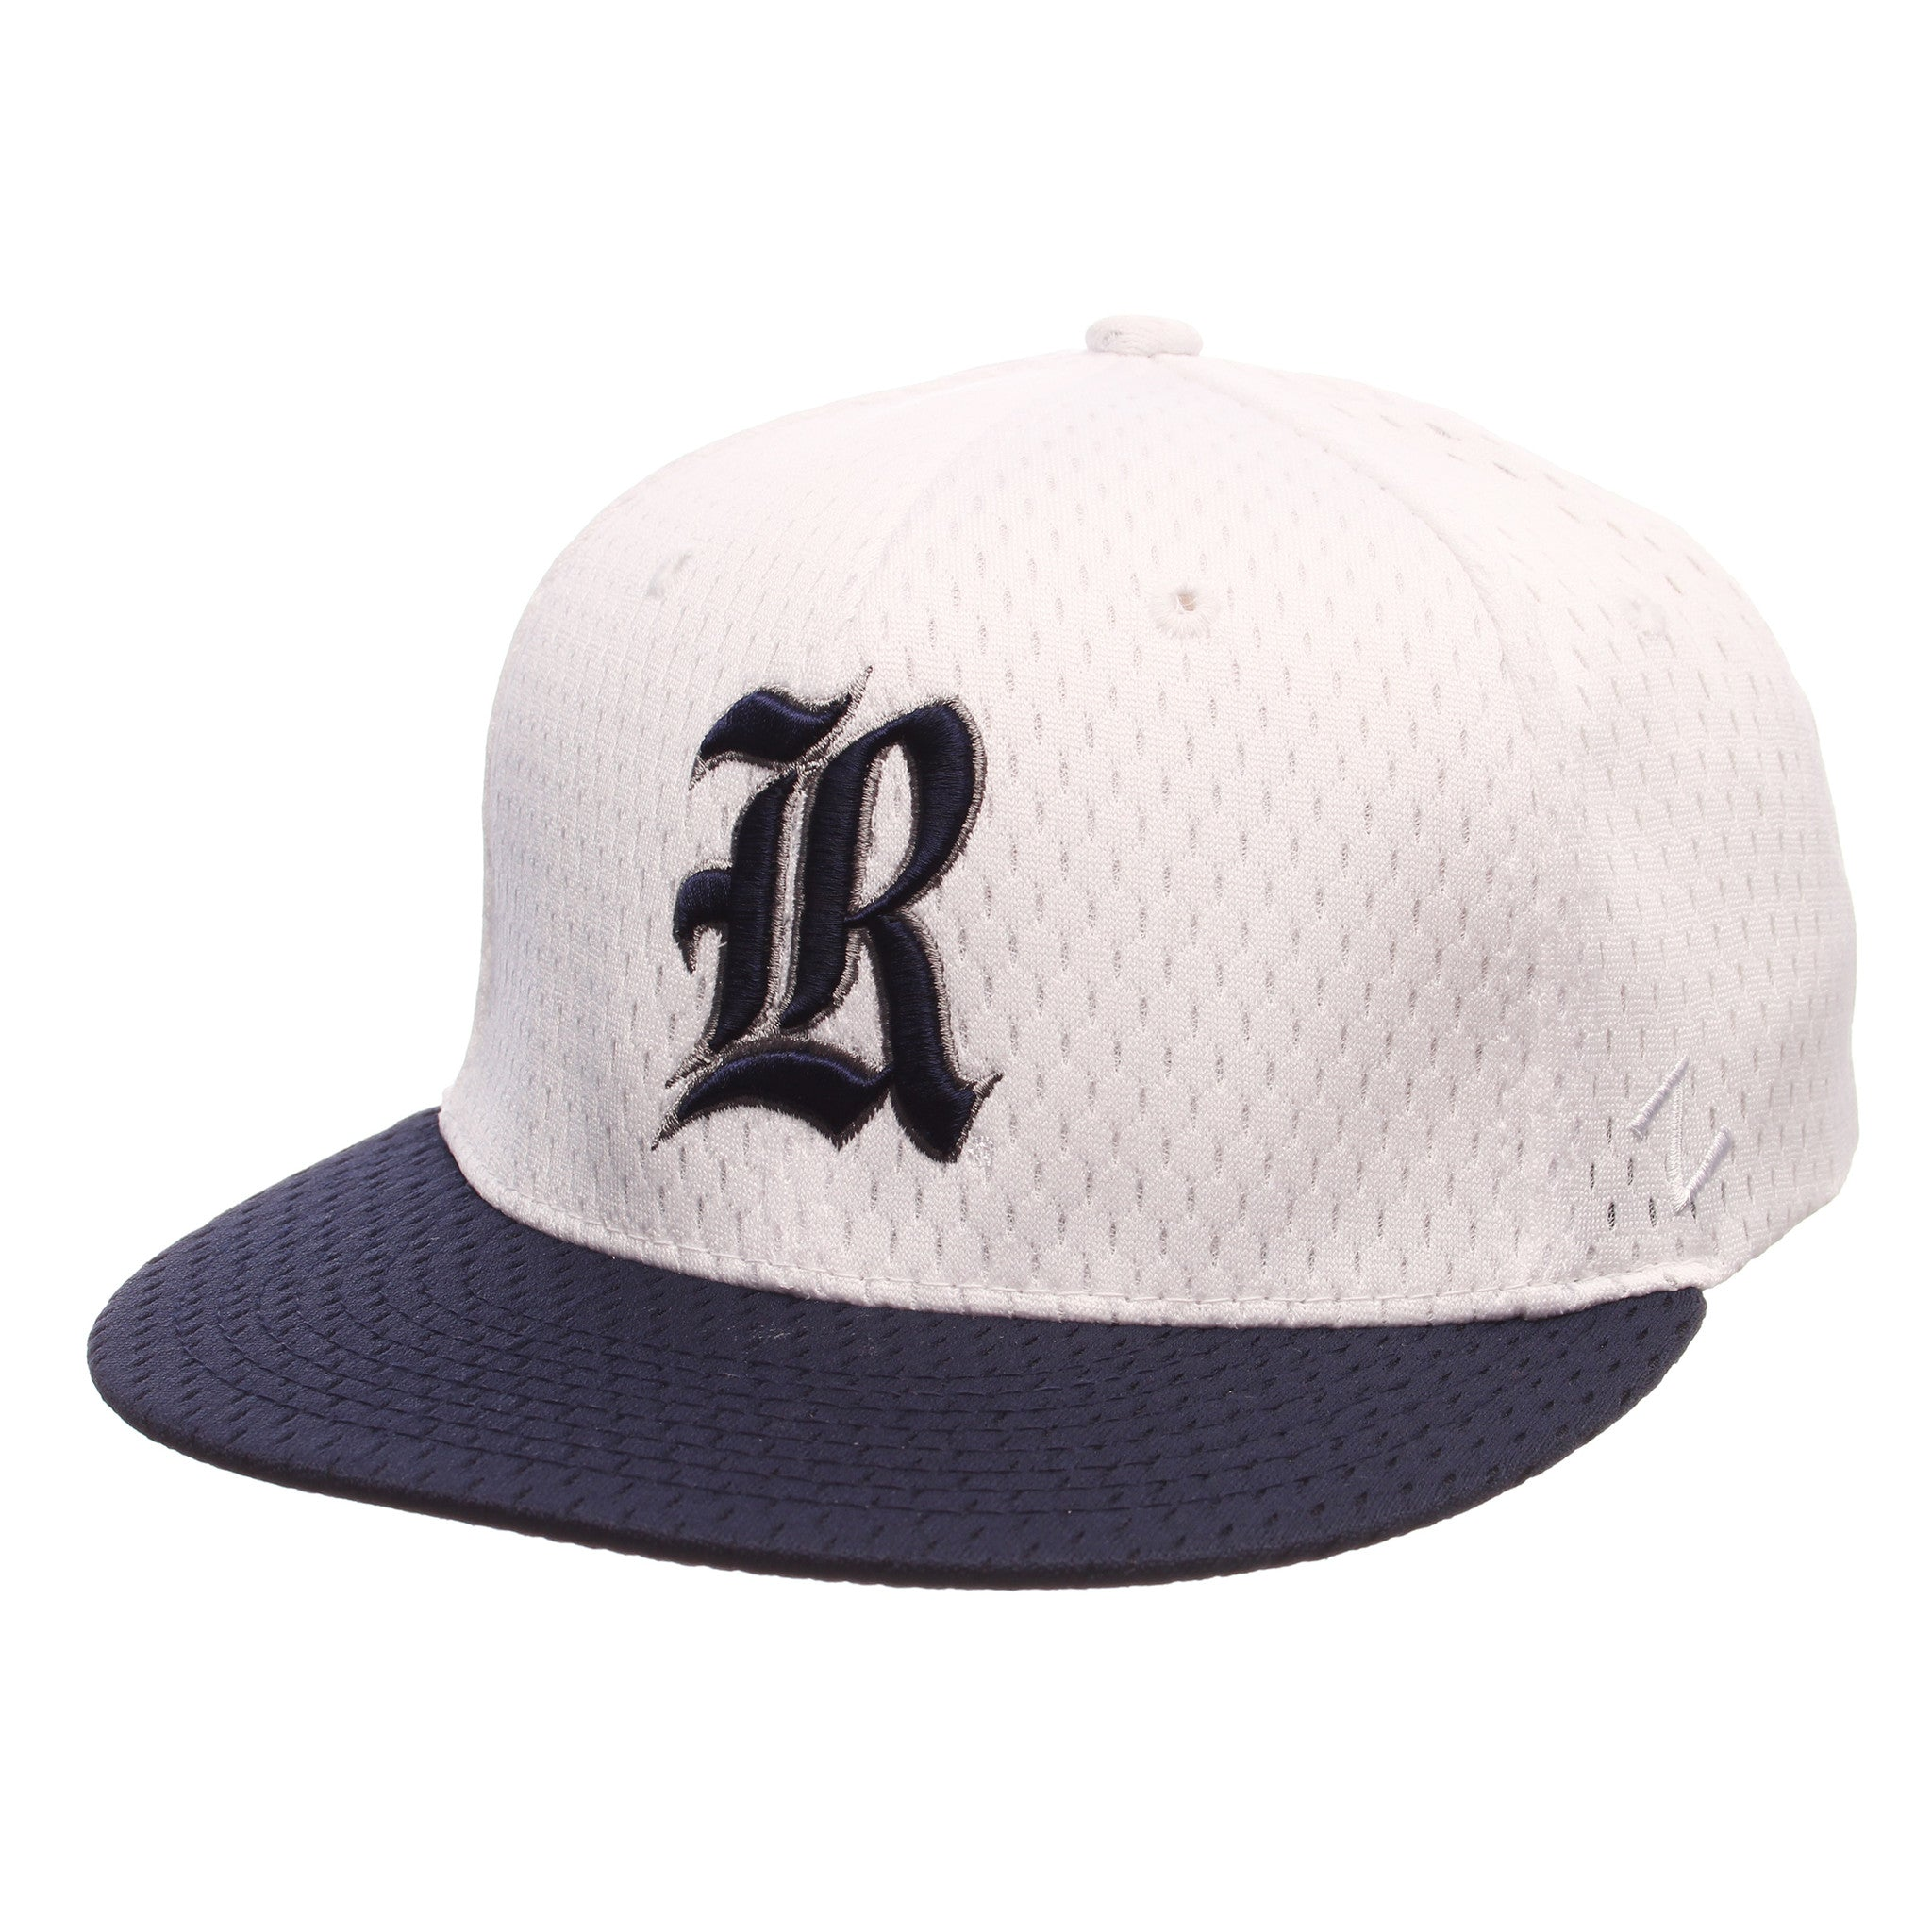 Rice University Primary Logo 32/5 (R) White Jersey Stretch Fit hats by Zephyr